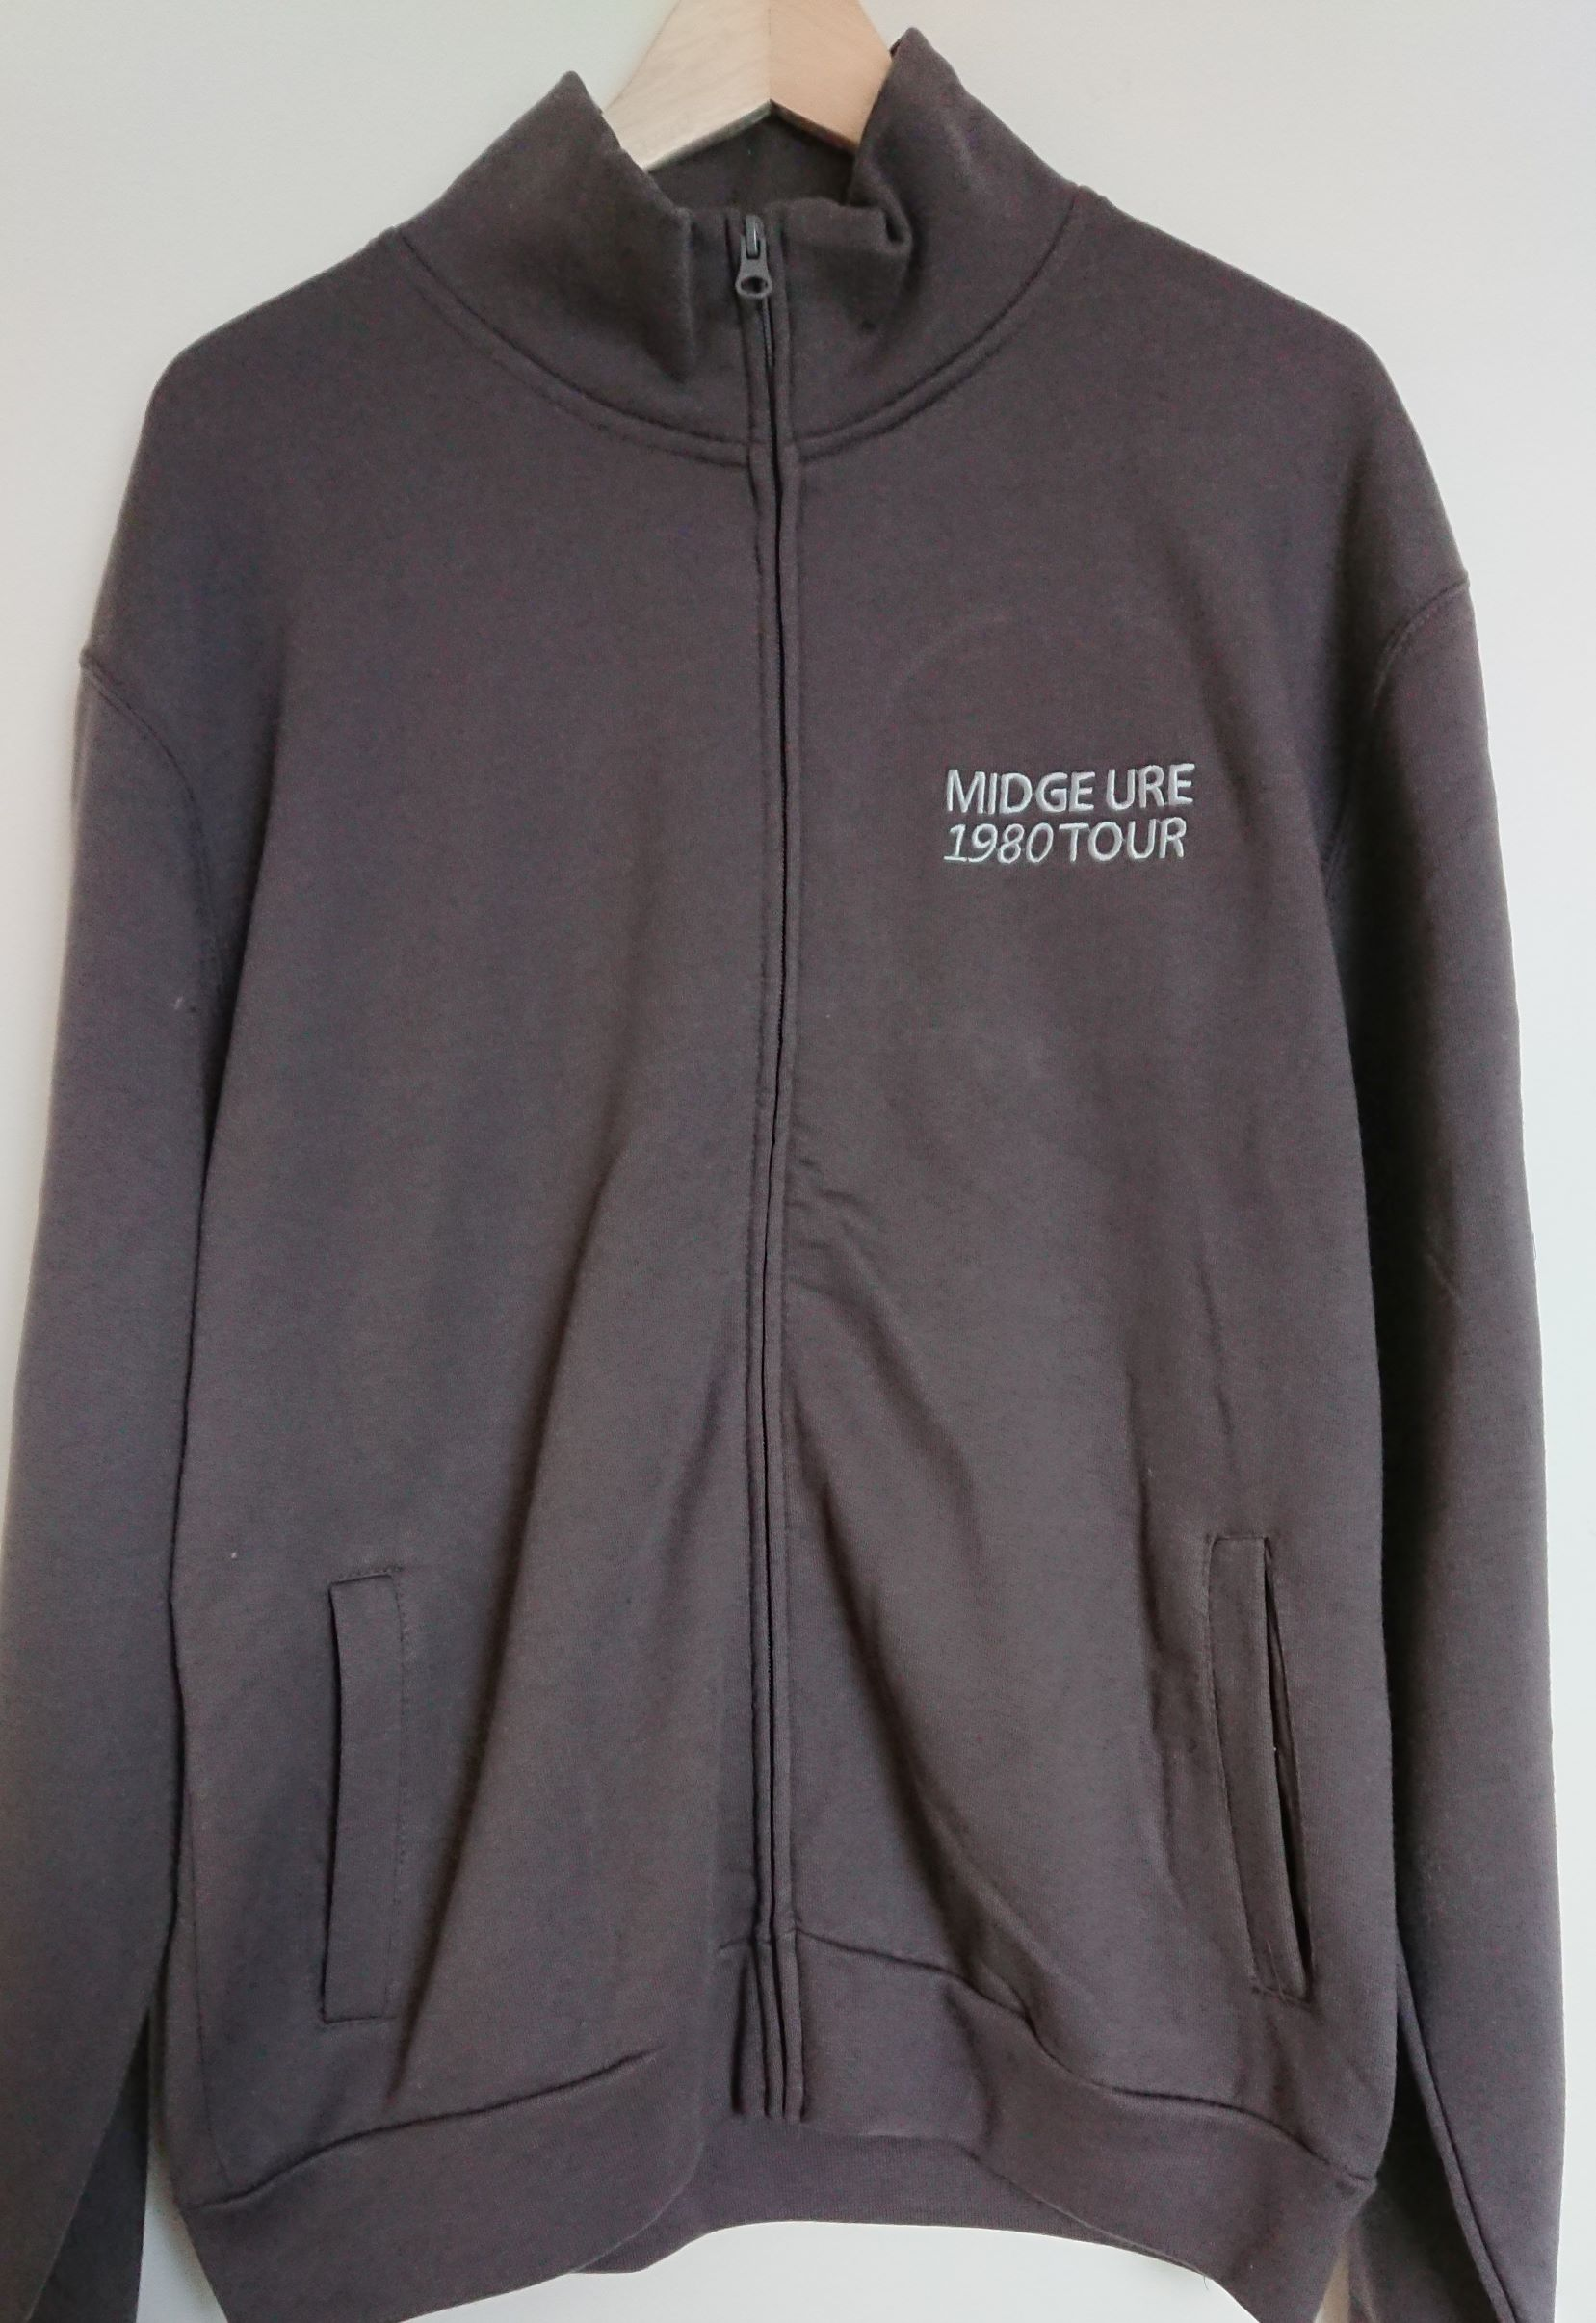 1980 Tour Jacket NOW REDUCED!